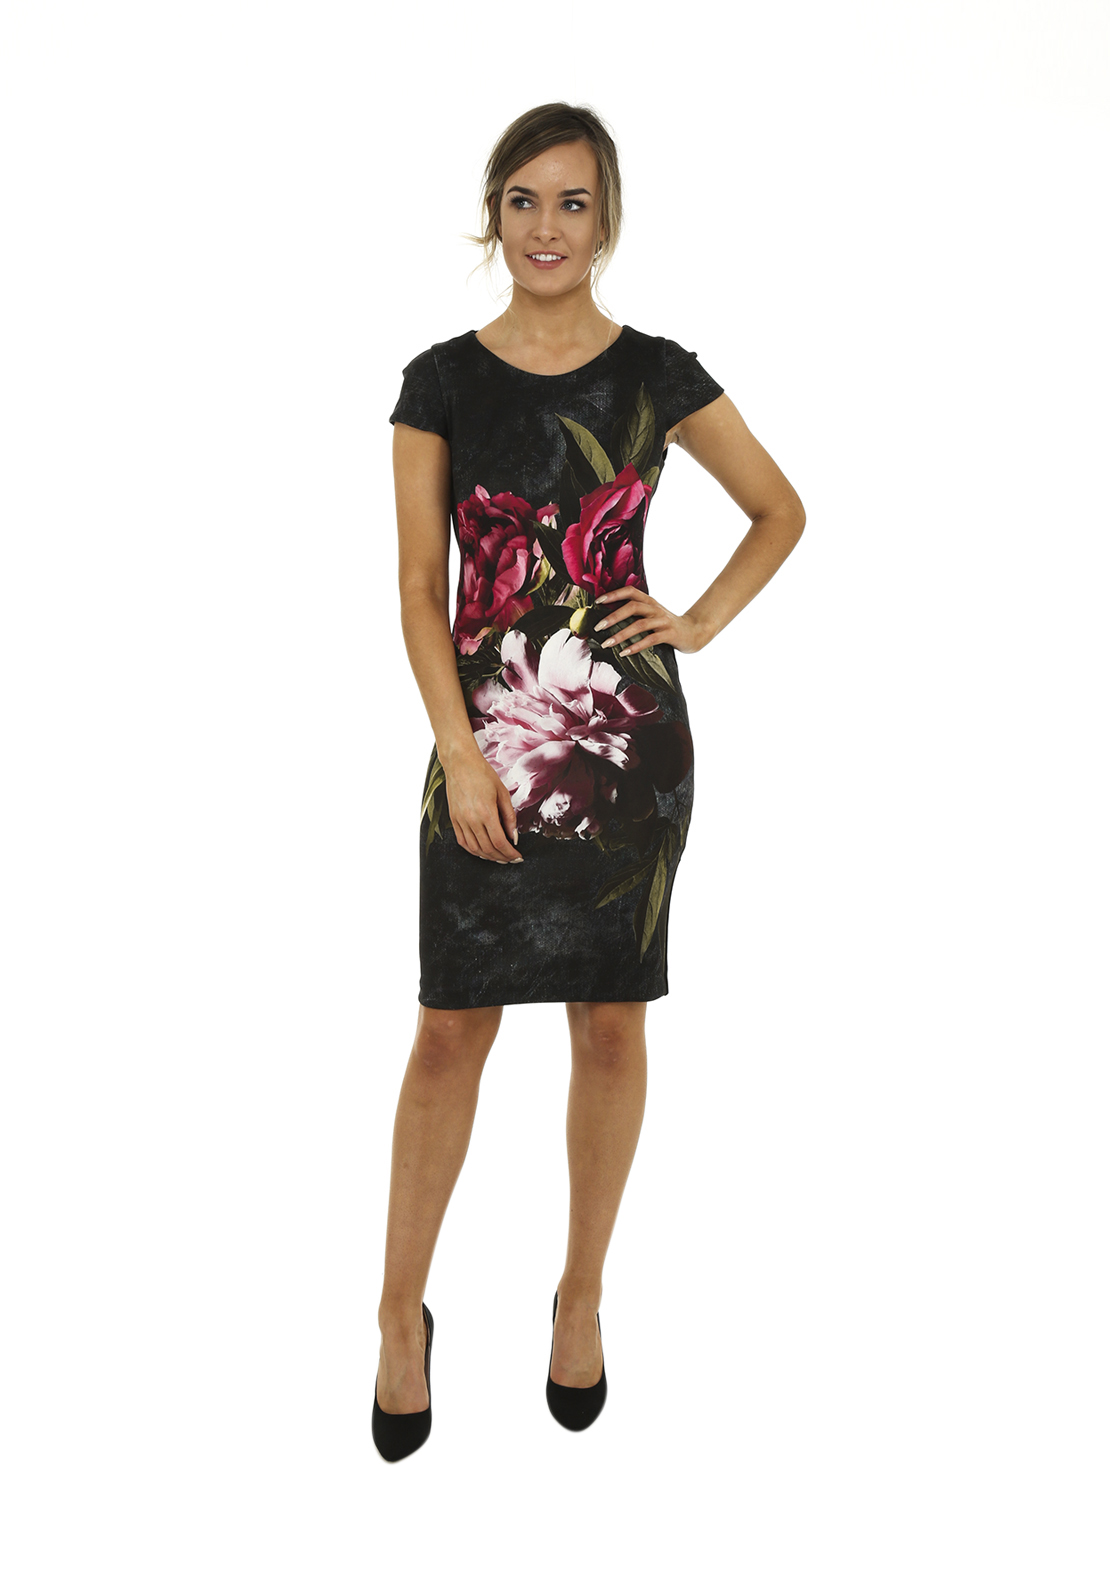 Rinascimento Floral Print Cap Sleeve Bodycon Dress, Black Multi